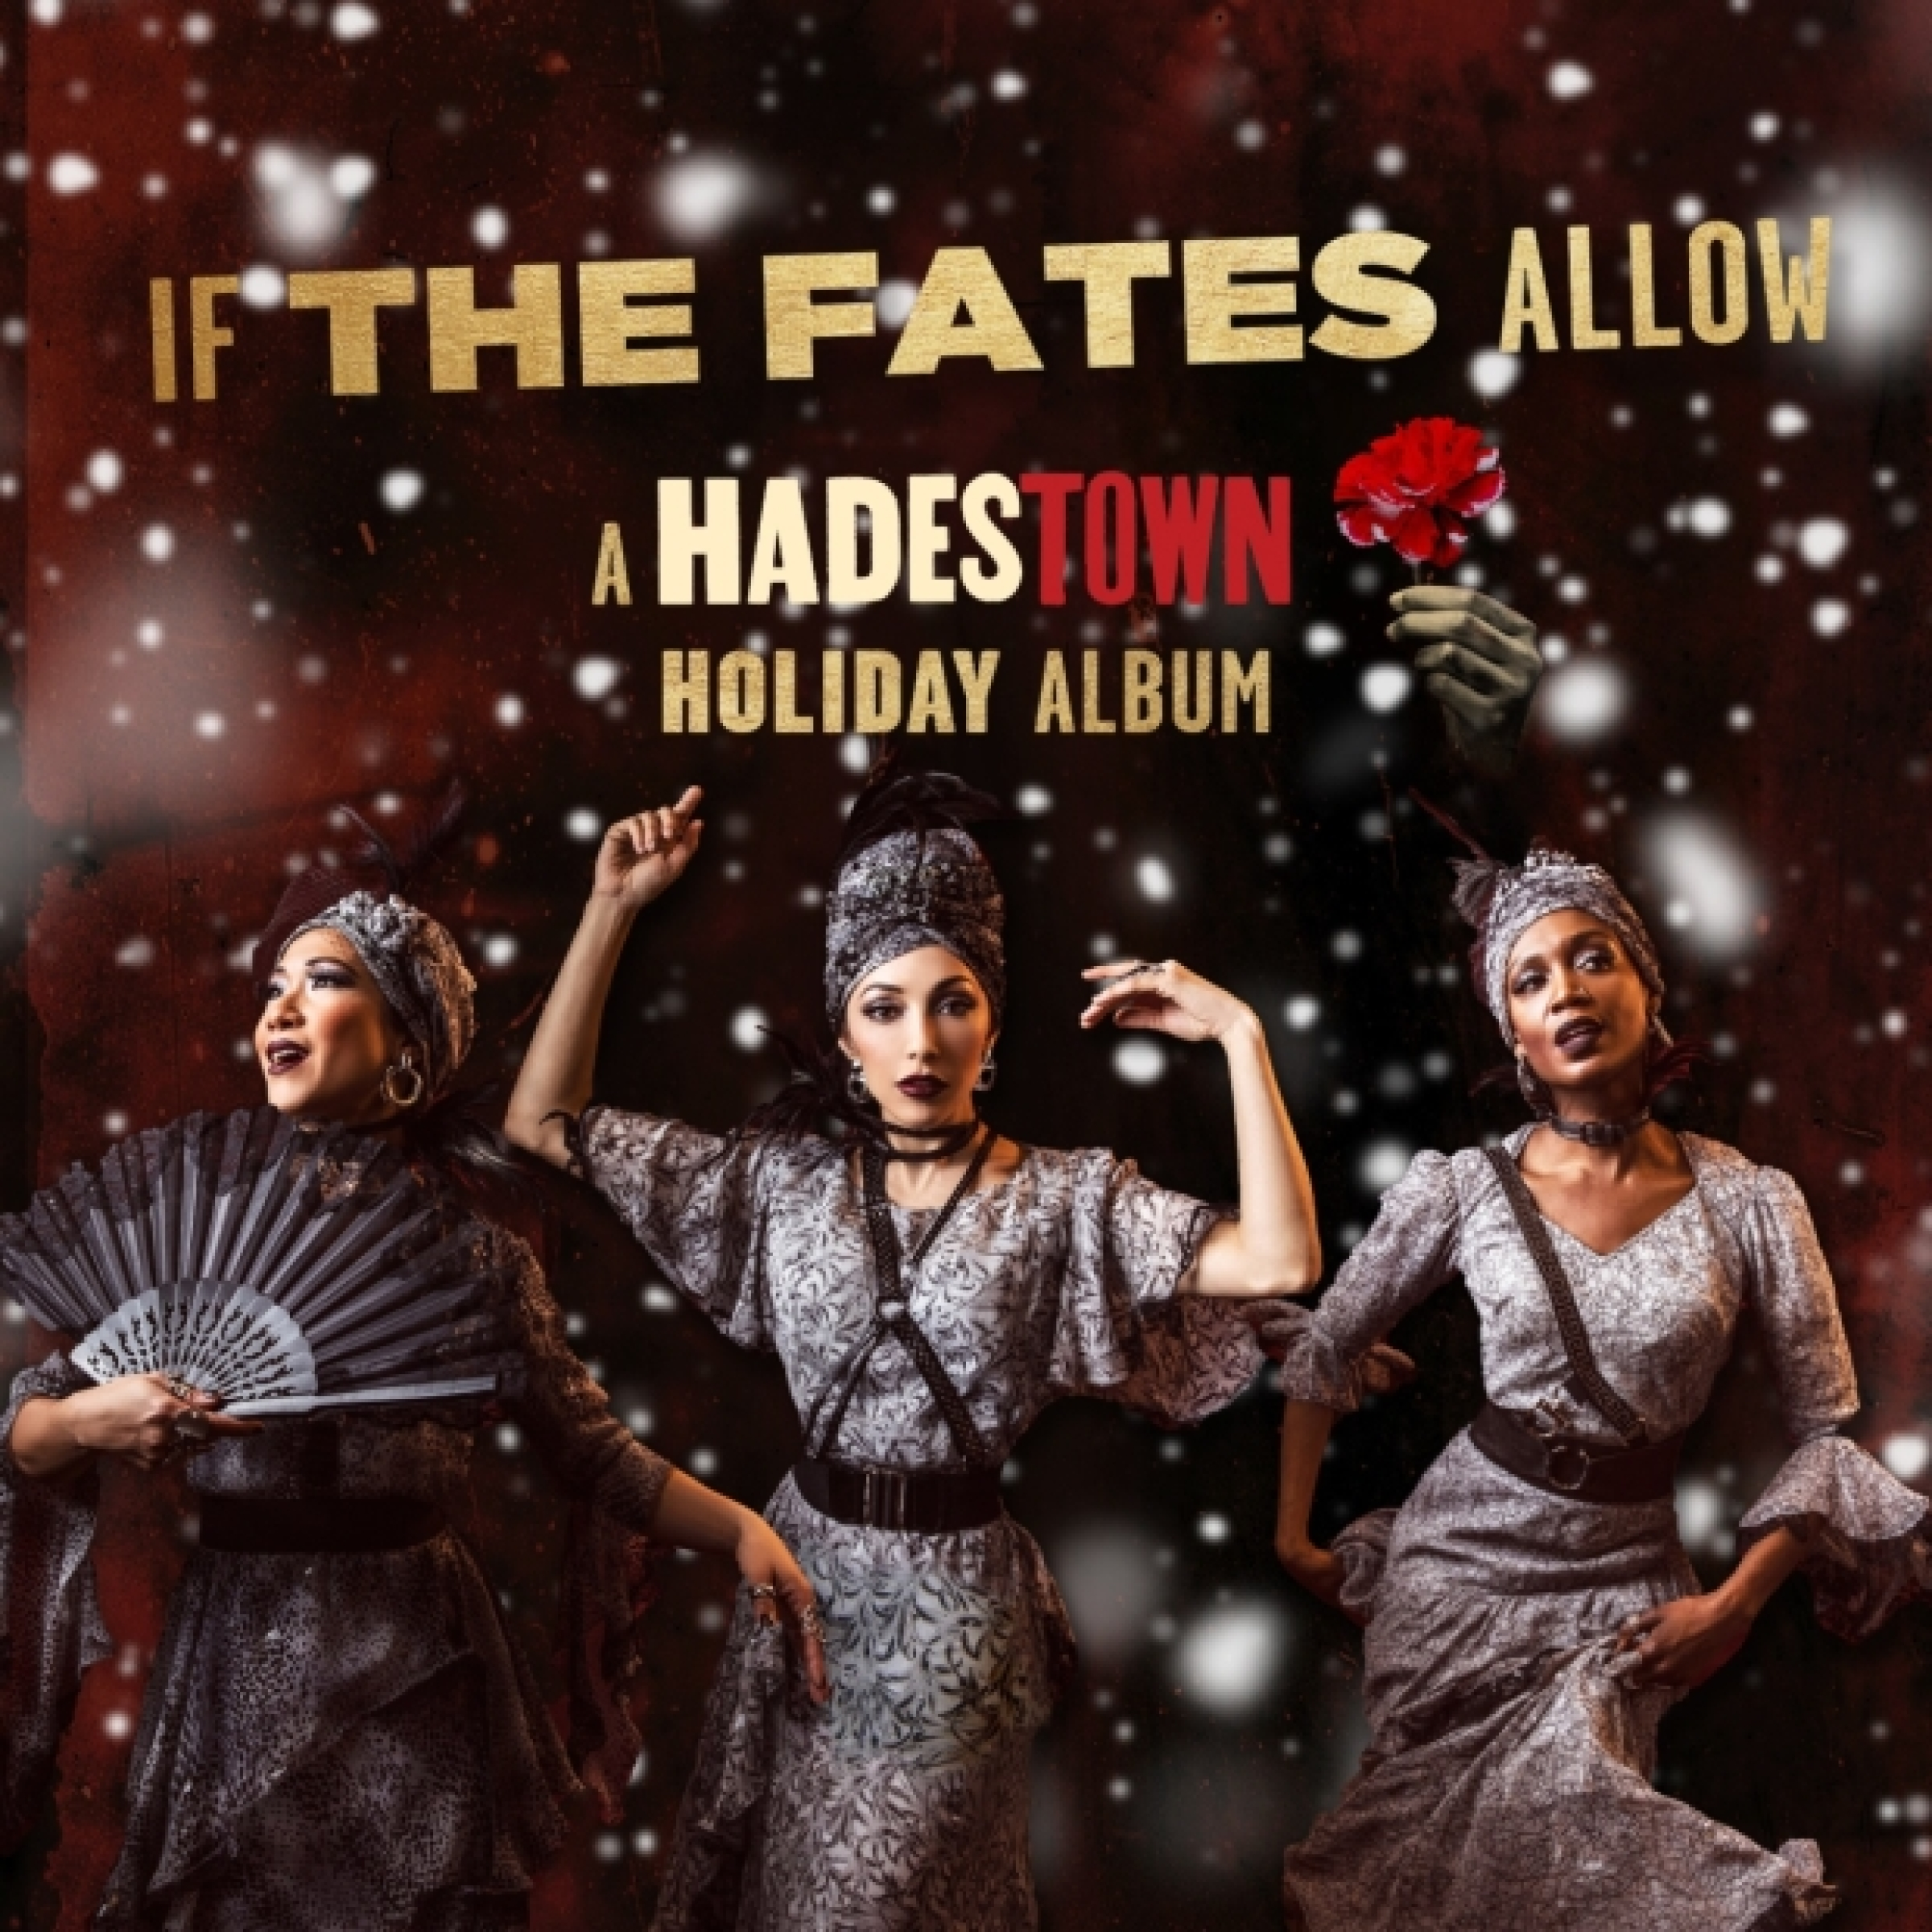 Hadestown's holiday album cover.